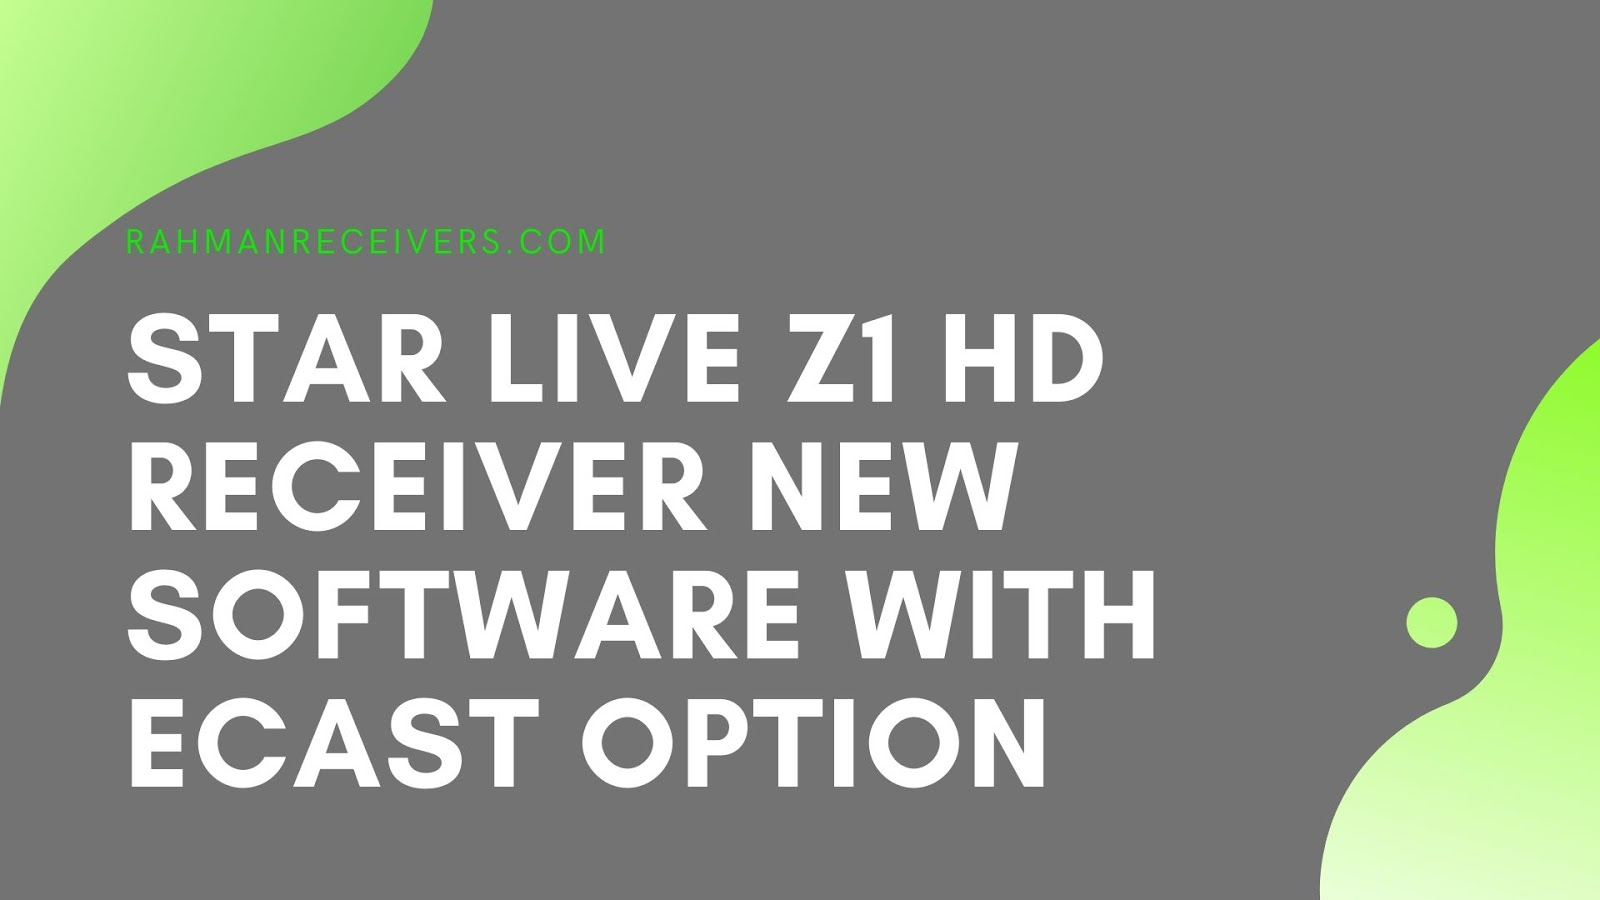 STAR LIVE Z1 HD RECEIVER NEW SOFTWARE WITH ECAST OPTION